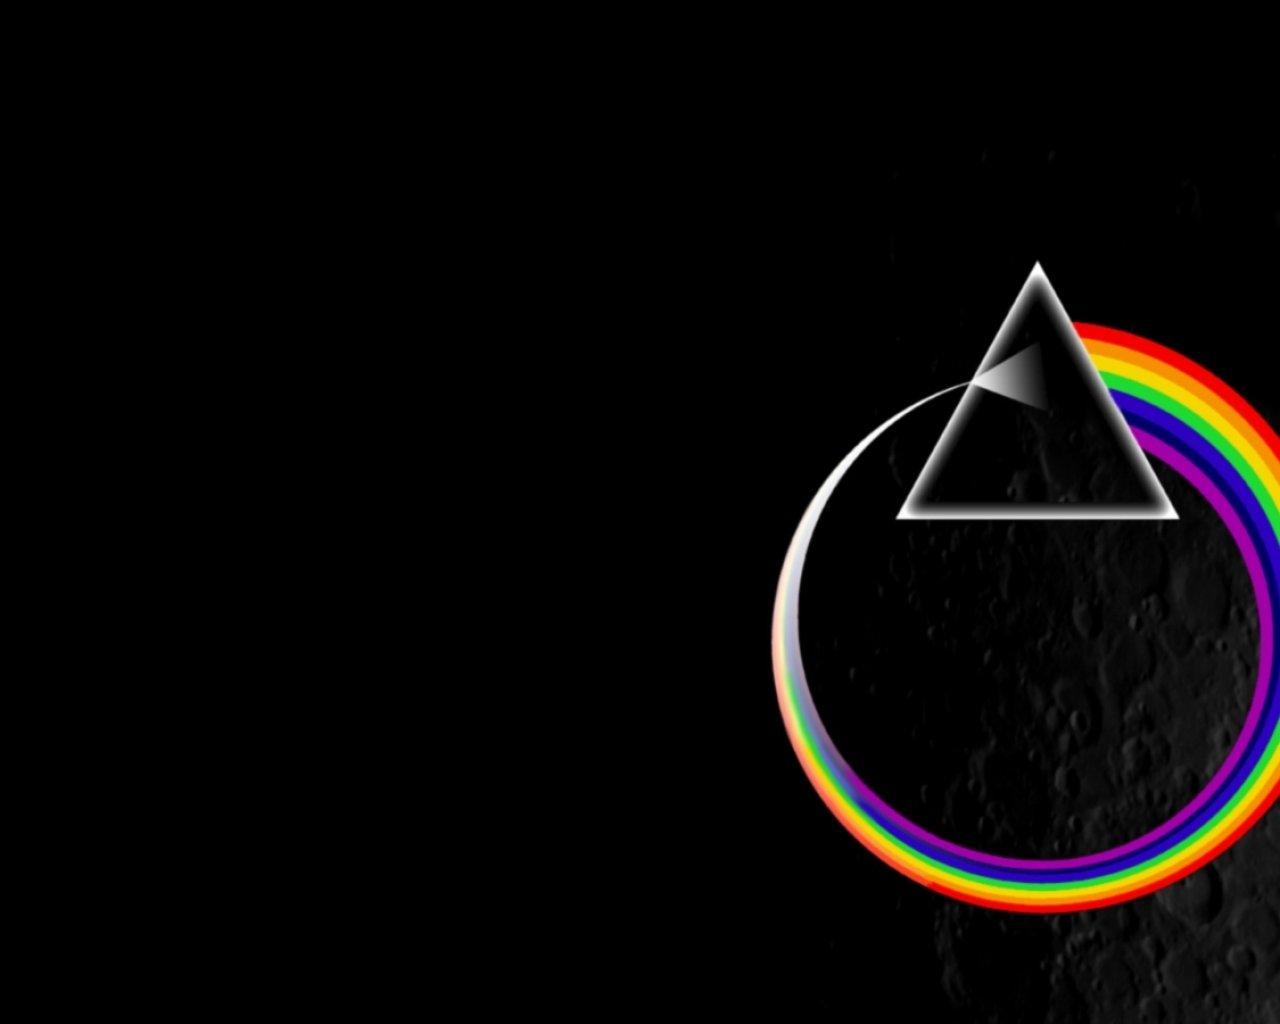 Pink Floyd Wallpaper High Resolution   All Wallpapers New 1280x1024